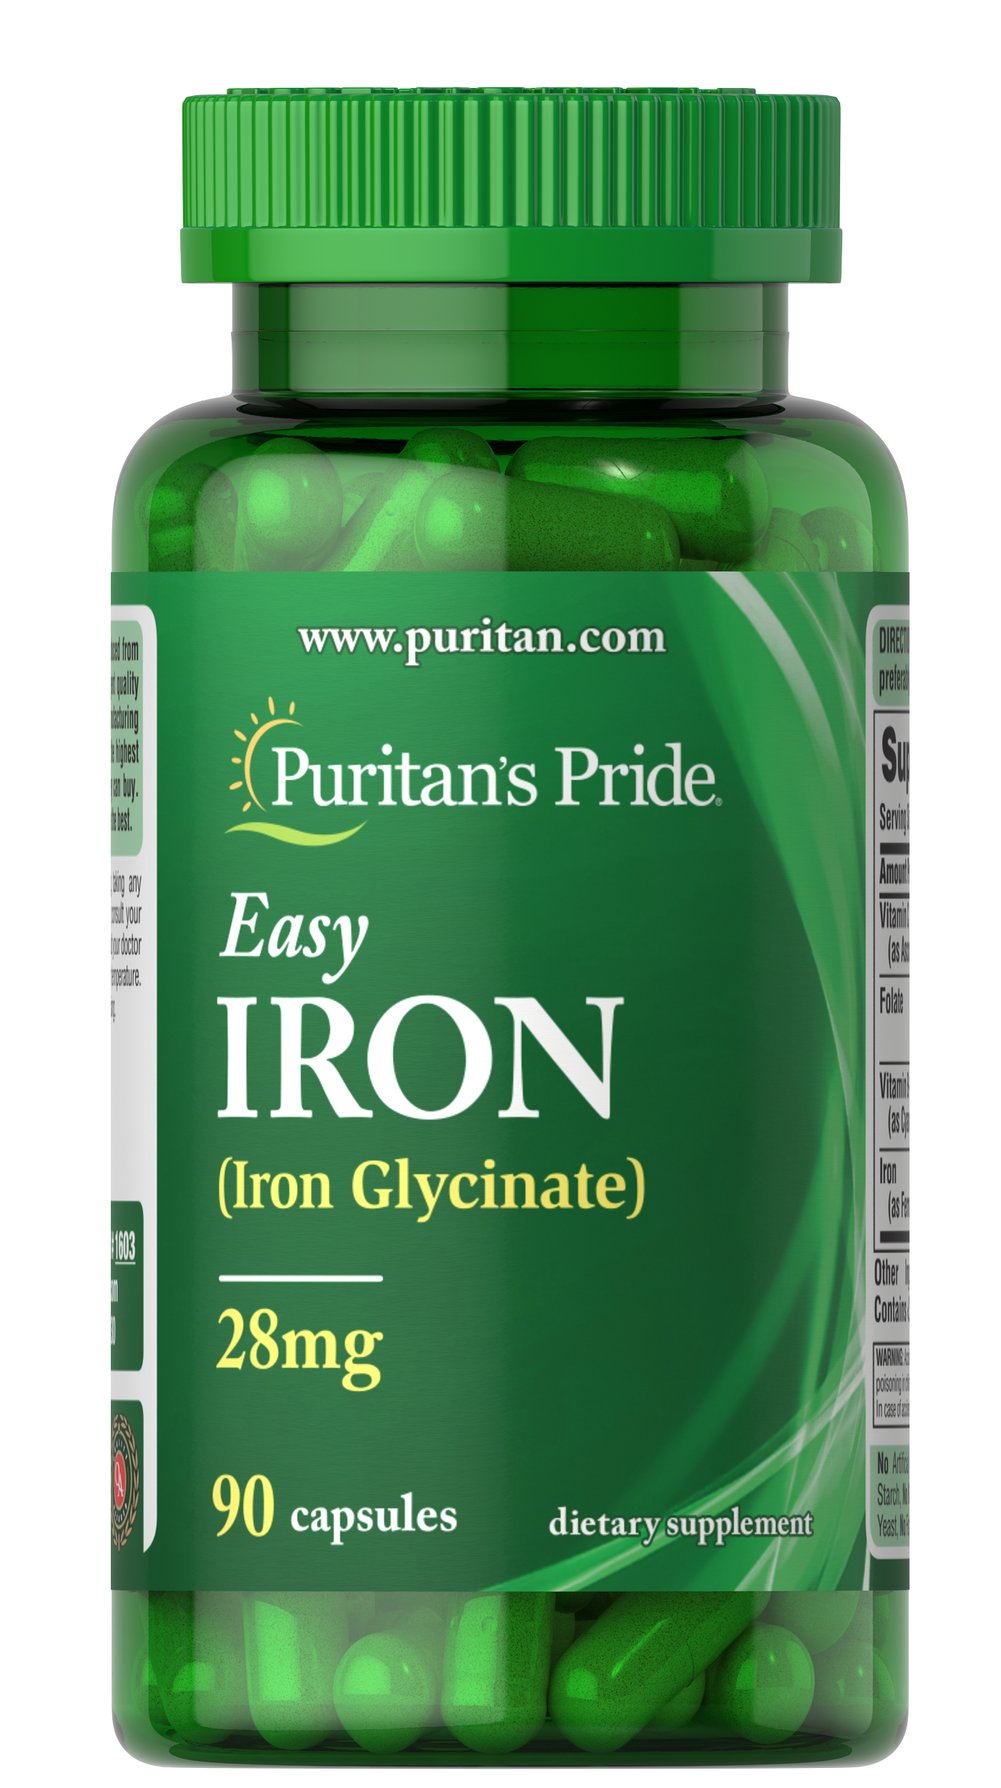 Easy Iron 28 mg (Iron Glycinate) <p>Supports Energy Utilization**</p><p>As an important dietary source of Iron, EASY IRON contains Iron Bis-Glycinate, a form of Iron that is gentle to your system.**  Iron is a necessary component of hemoglobin, the oxygen carrier in the blood and is also important for energy utilization.** </p> 90 Capsules 28 mg $10.29